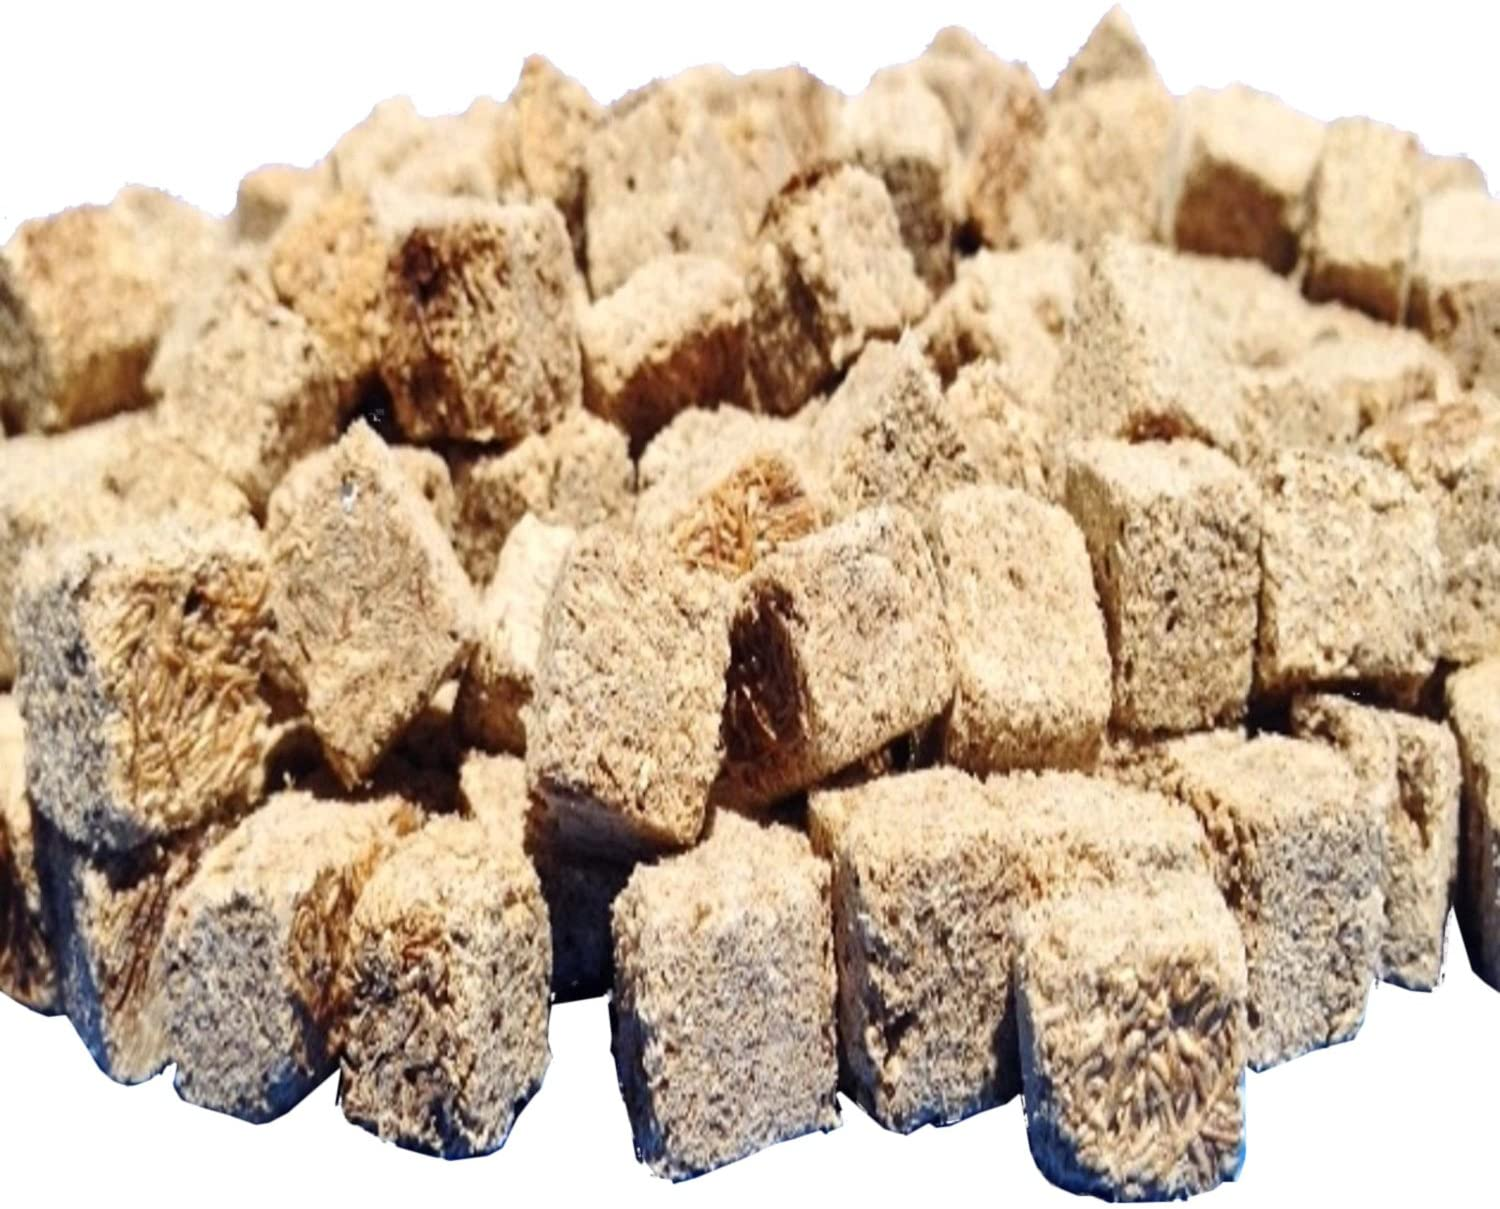 Freeze Dried Tubifex Worm Cubes. Aquatic Foods Freeze Dried Tropical Fish Foods